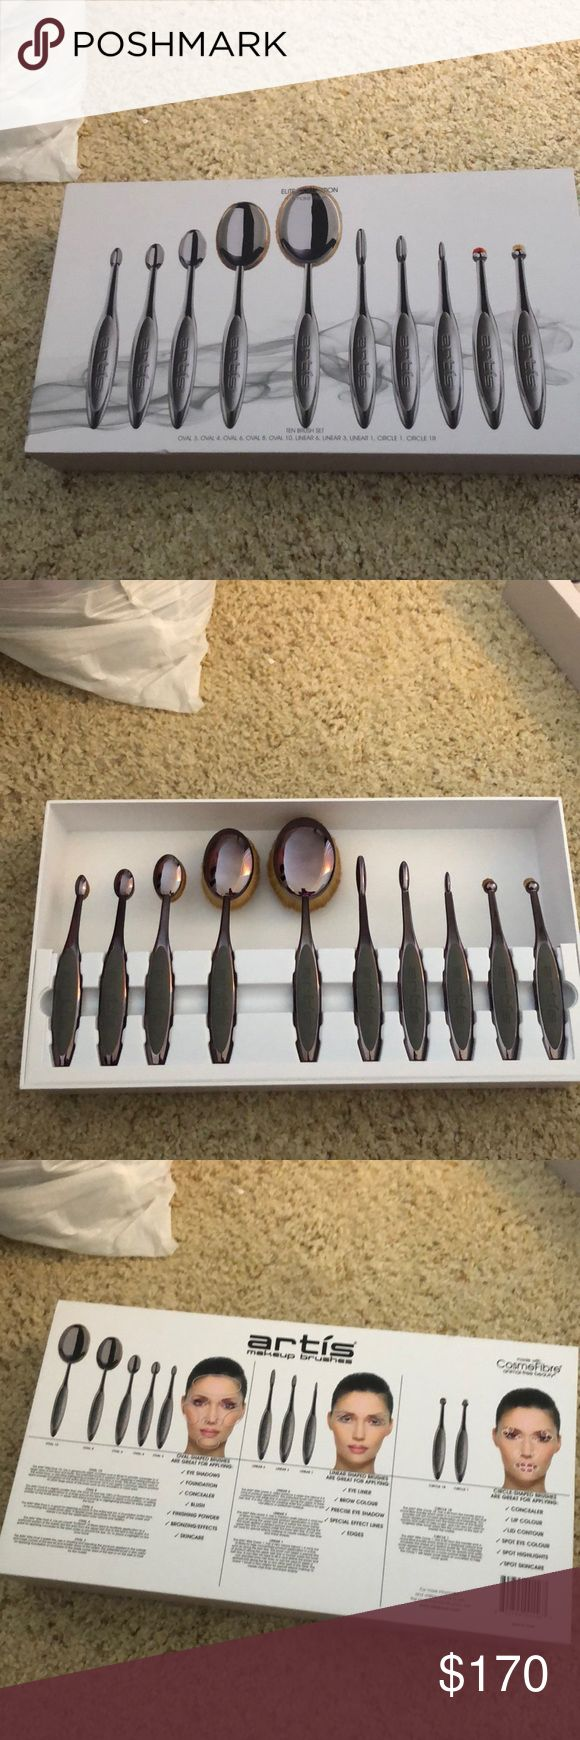 Brand new artis elite collection brush set Never used